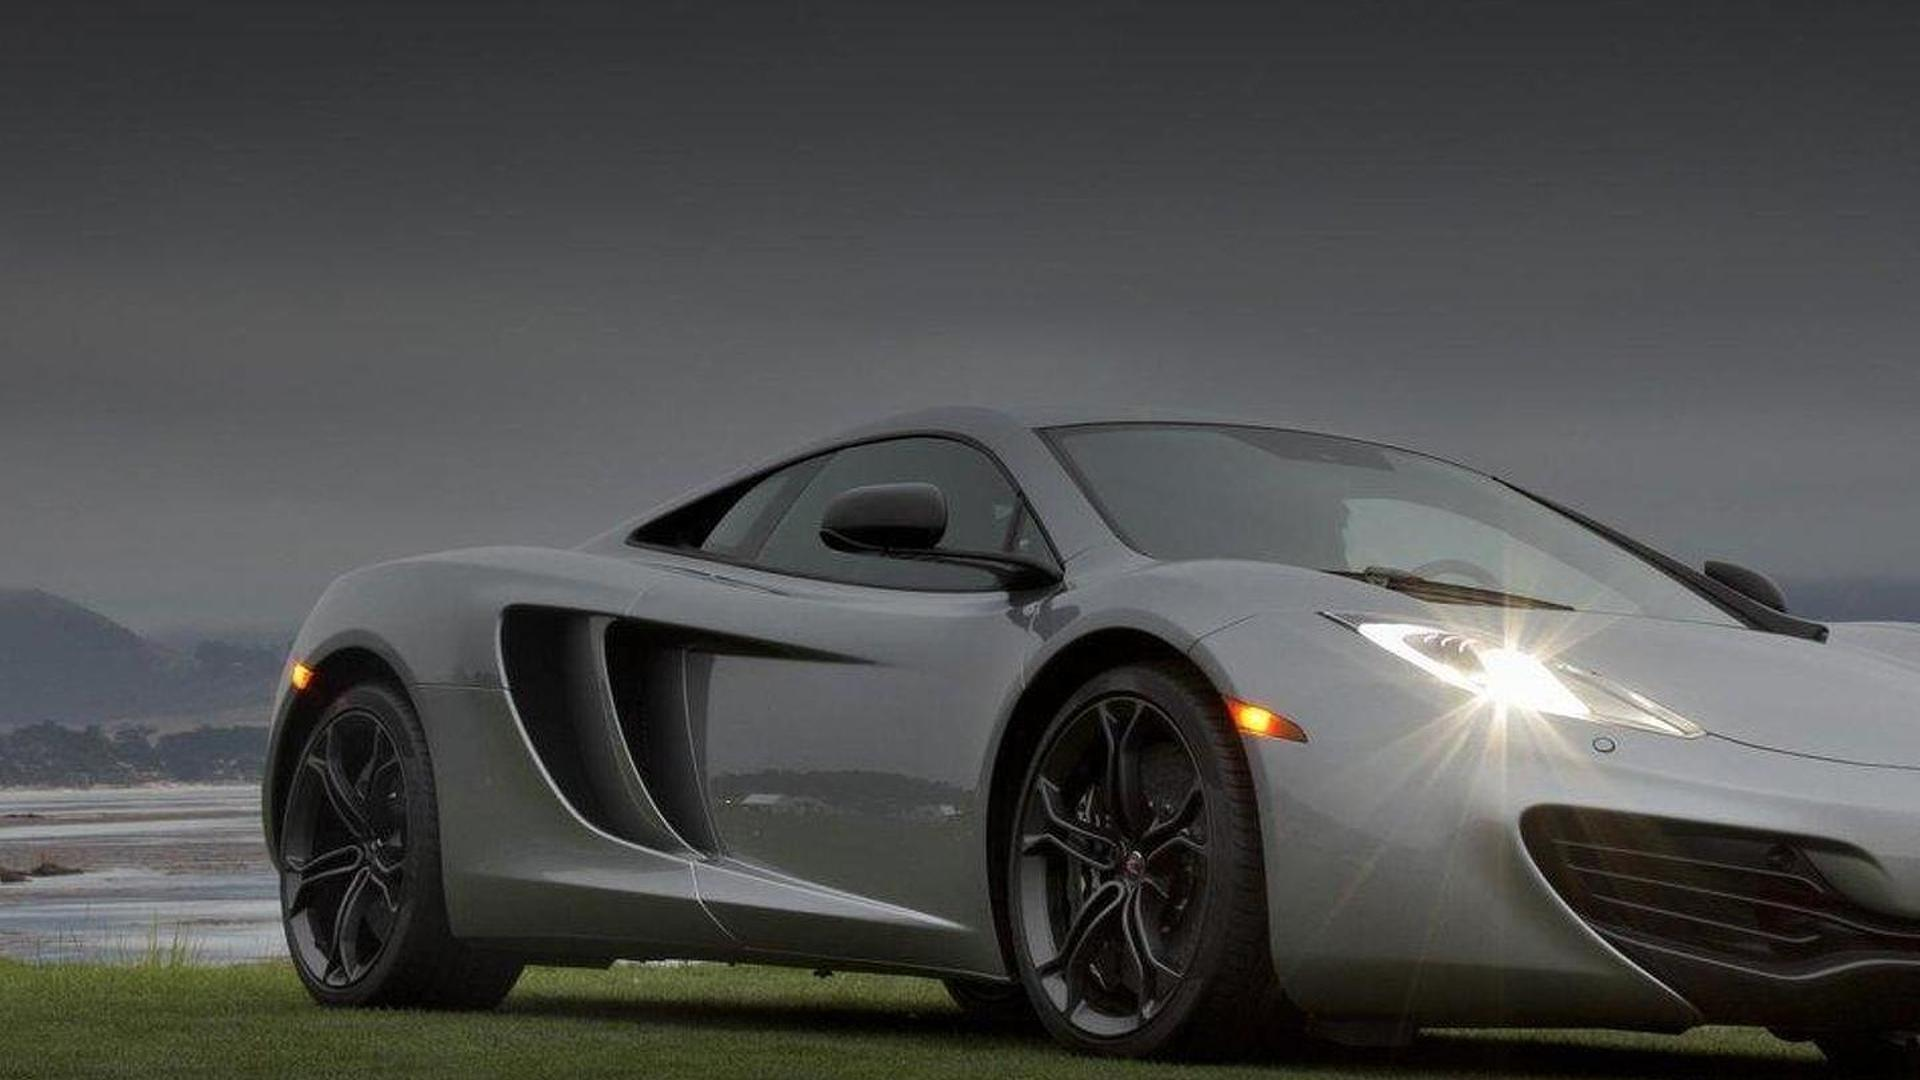 McLaren MP4-12C embarks on North American tour [video]